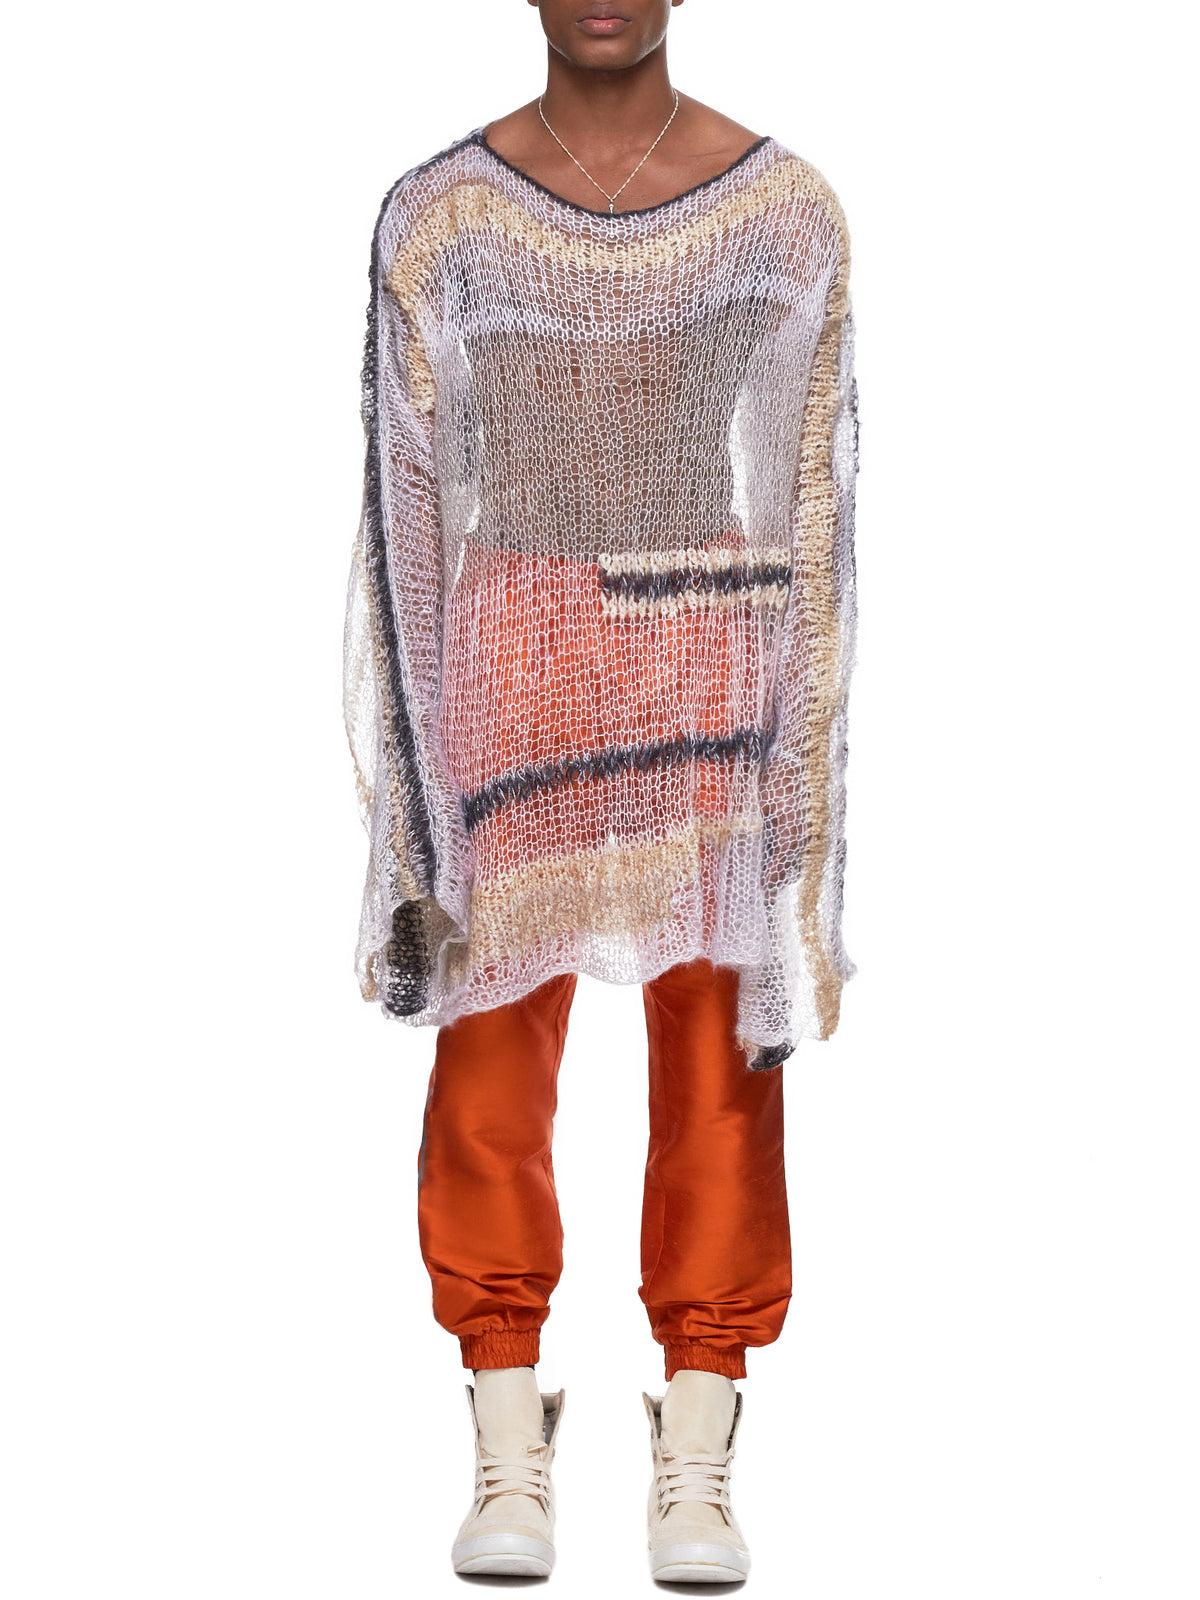 Astrid Andersen Sweater - Hlorenzo Front